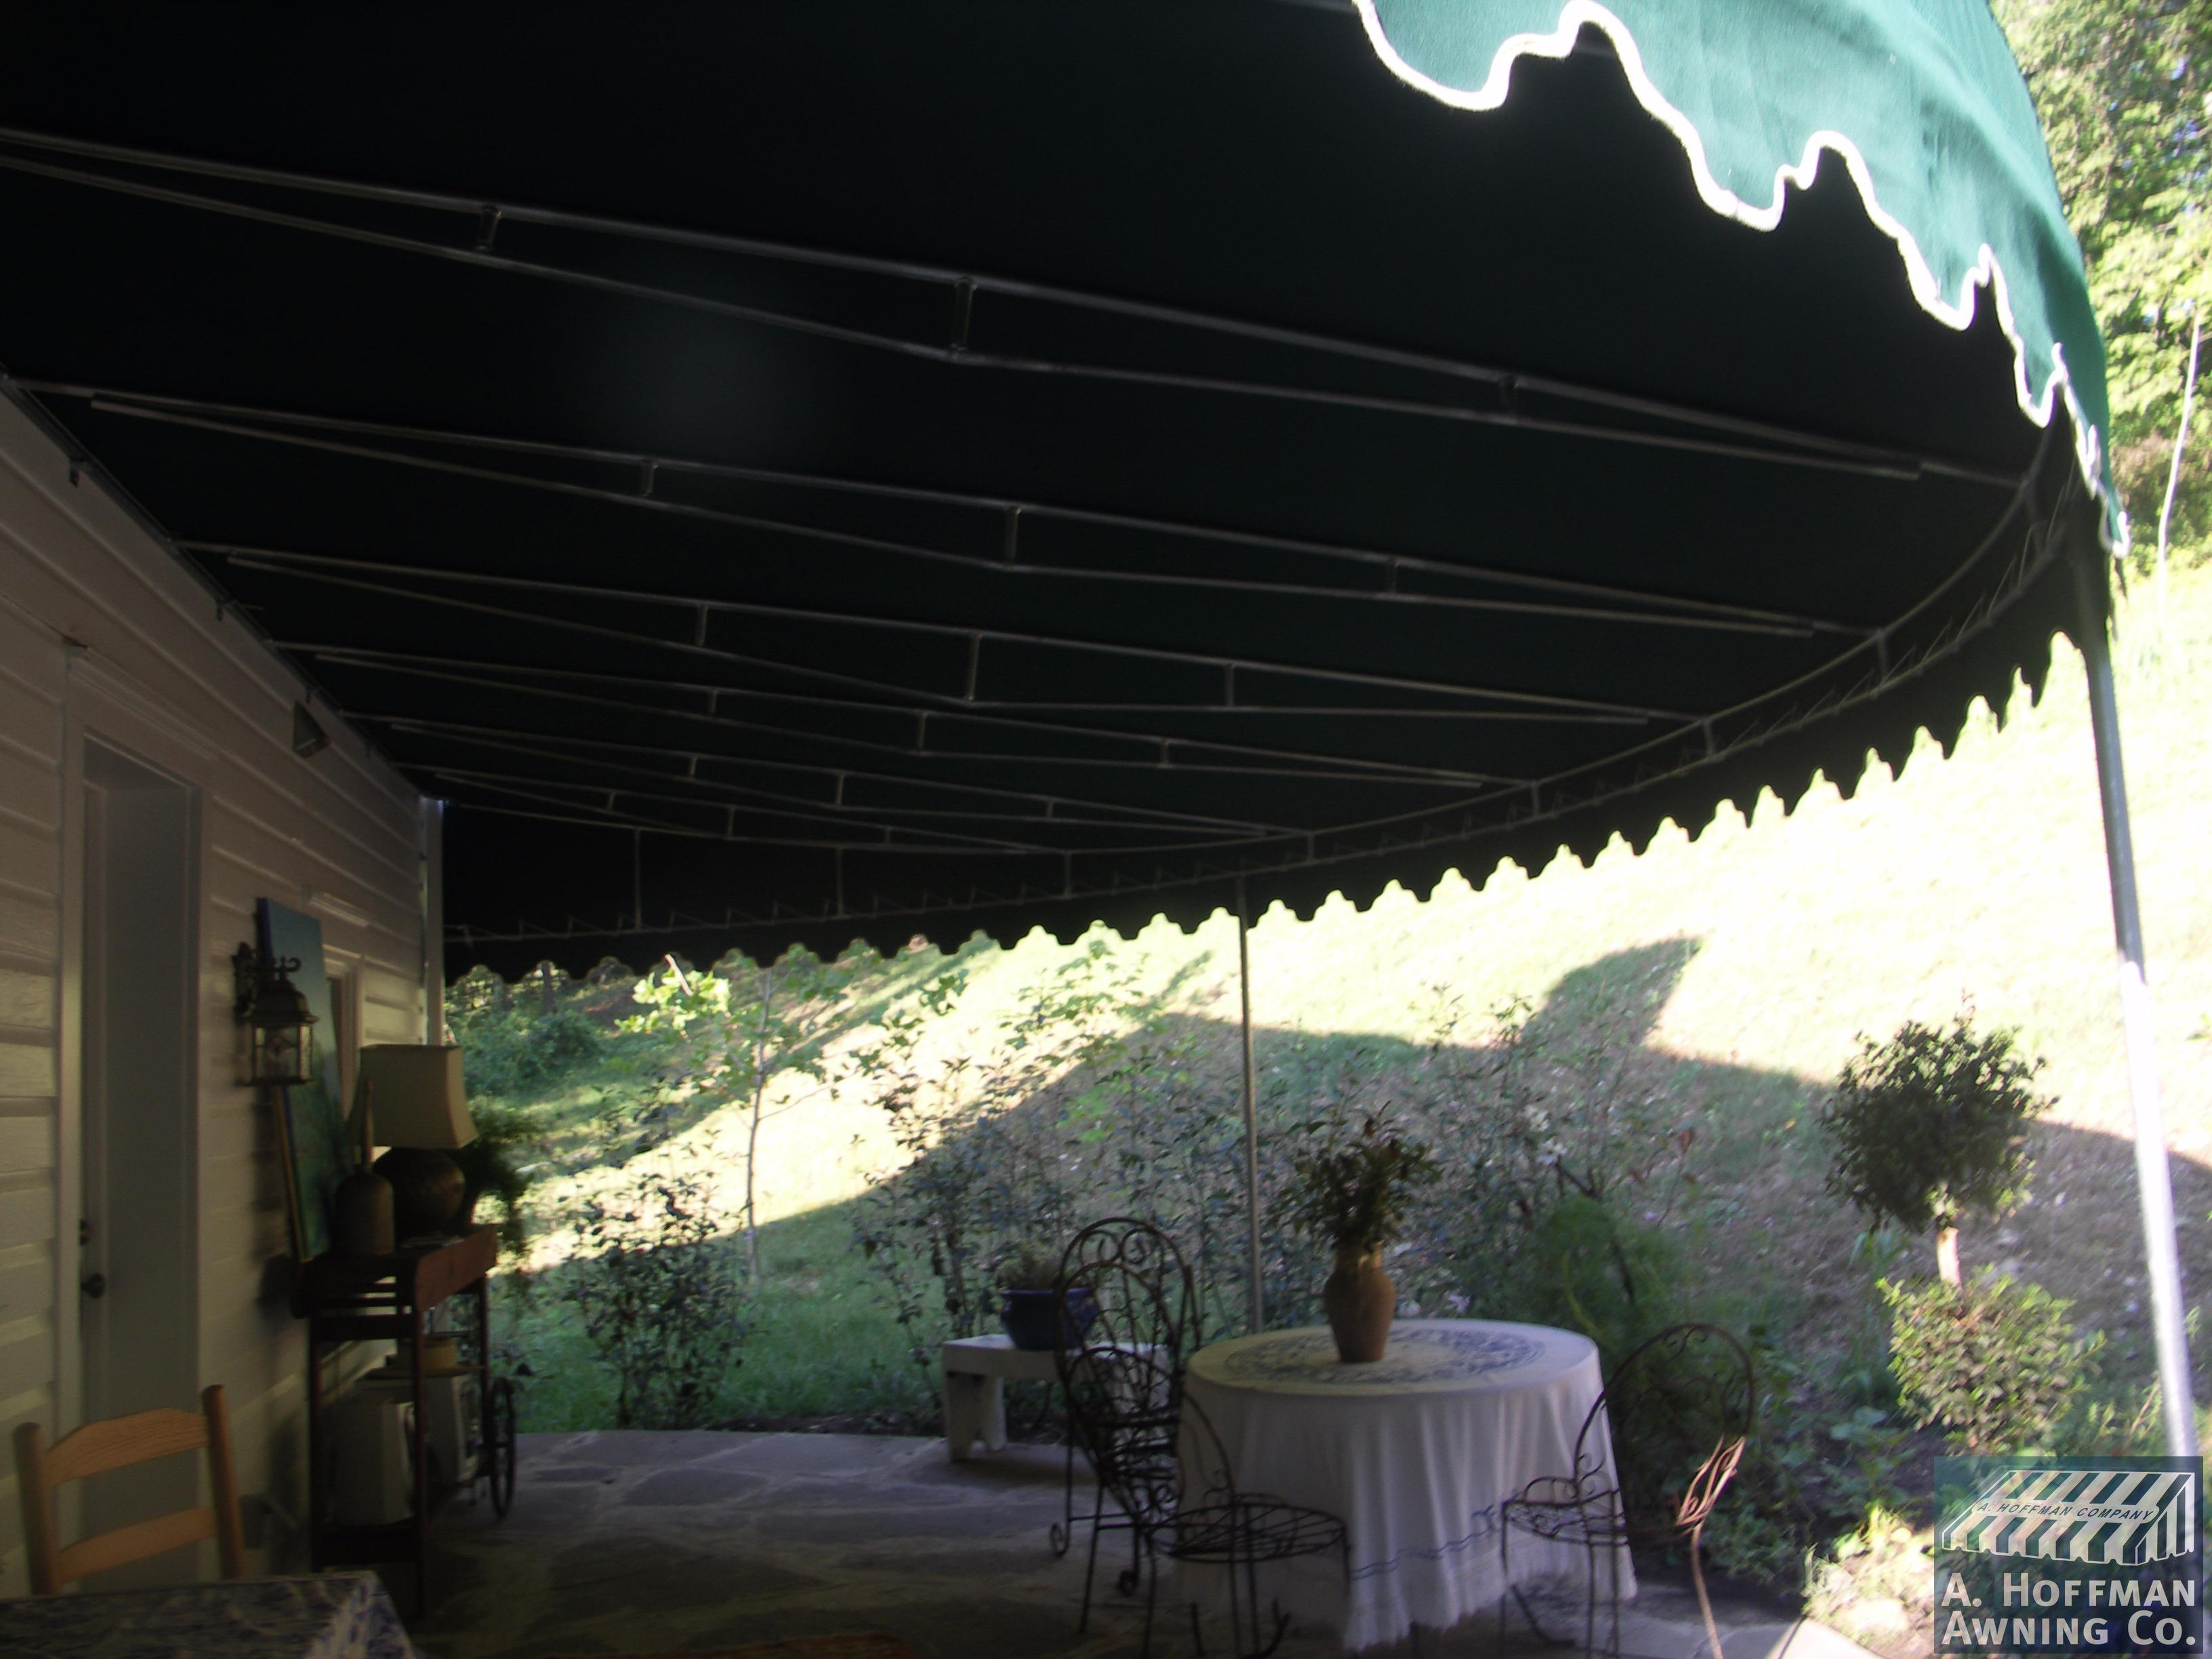 A. Hoffman Awning in Baltimore     410-685-5687     This custom designed curved patio awning was designed to follow the curvature of a half round stone patio. The finished awning was stunning.